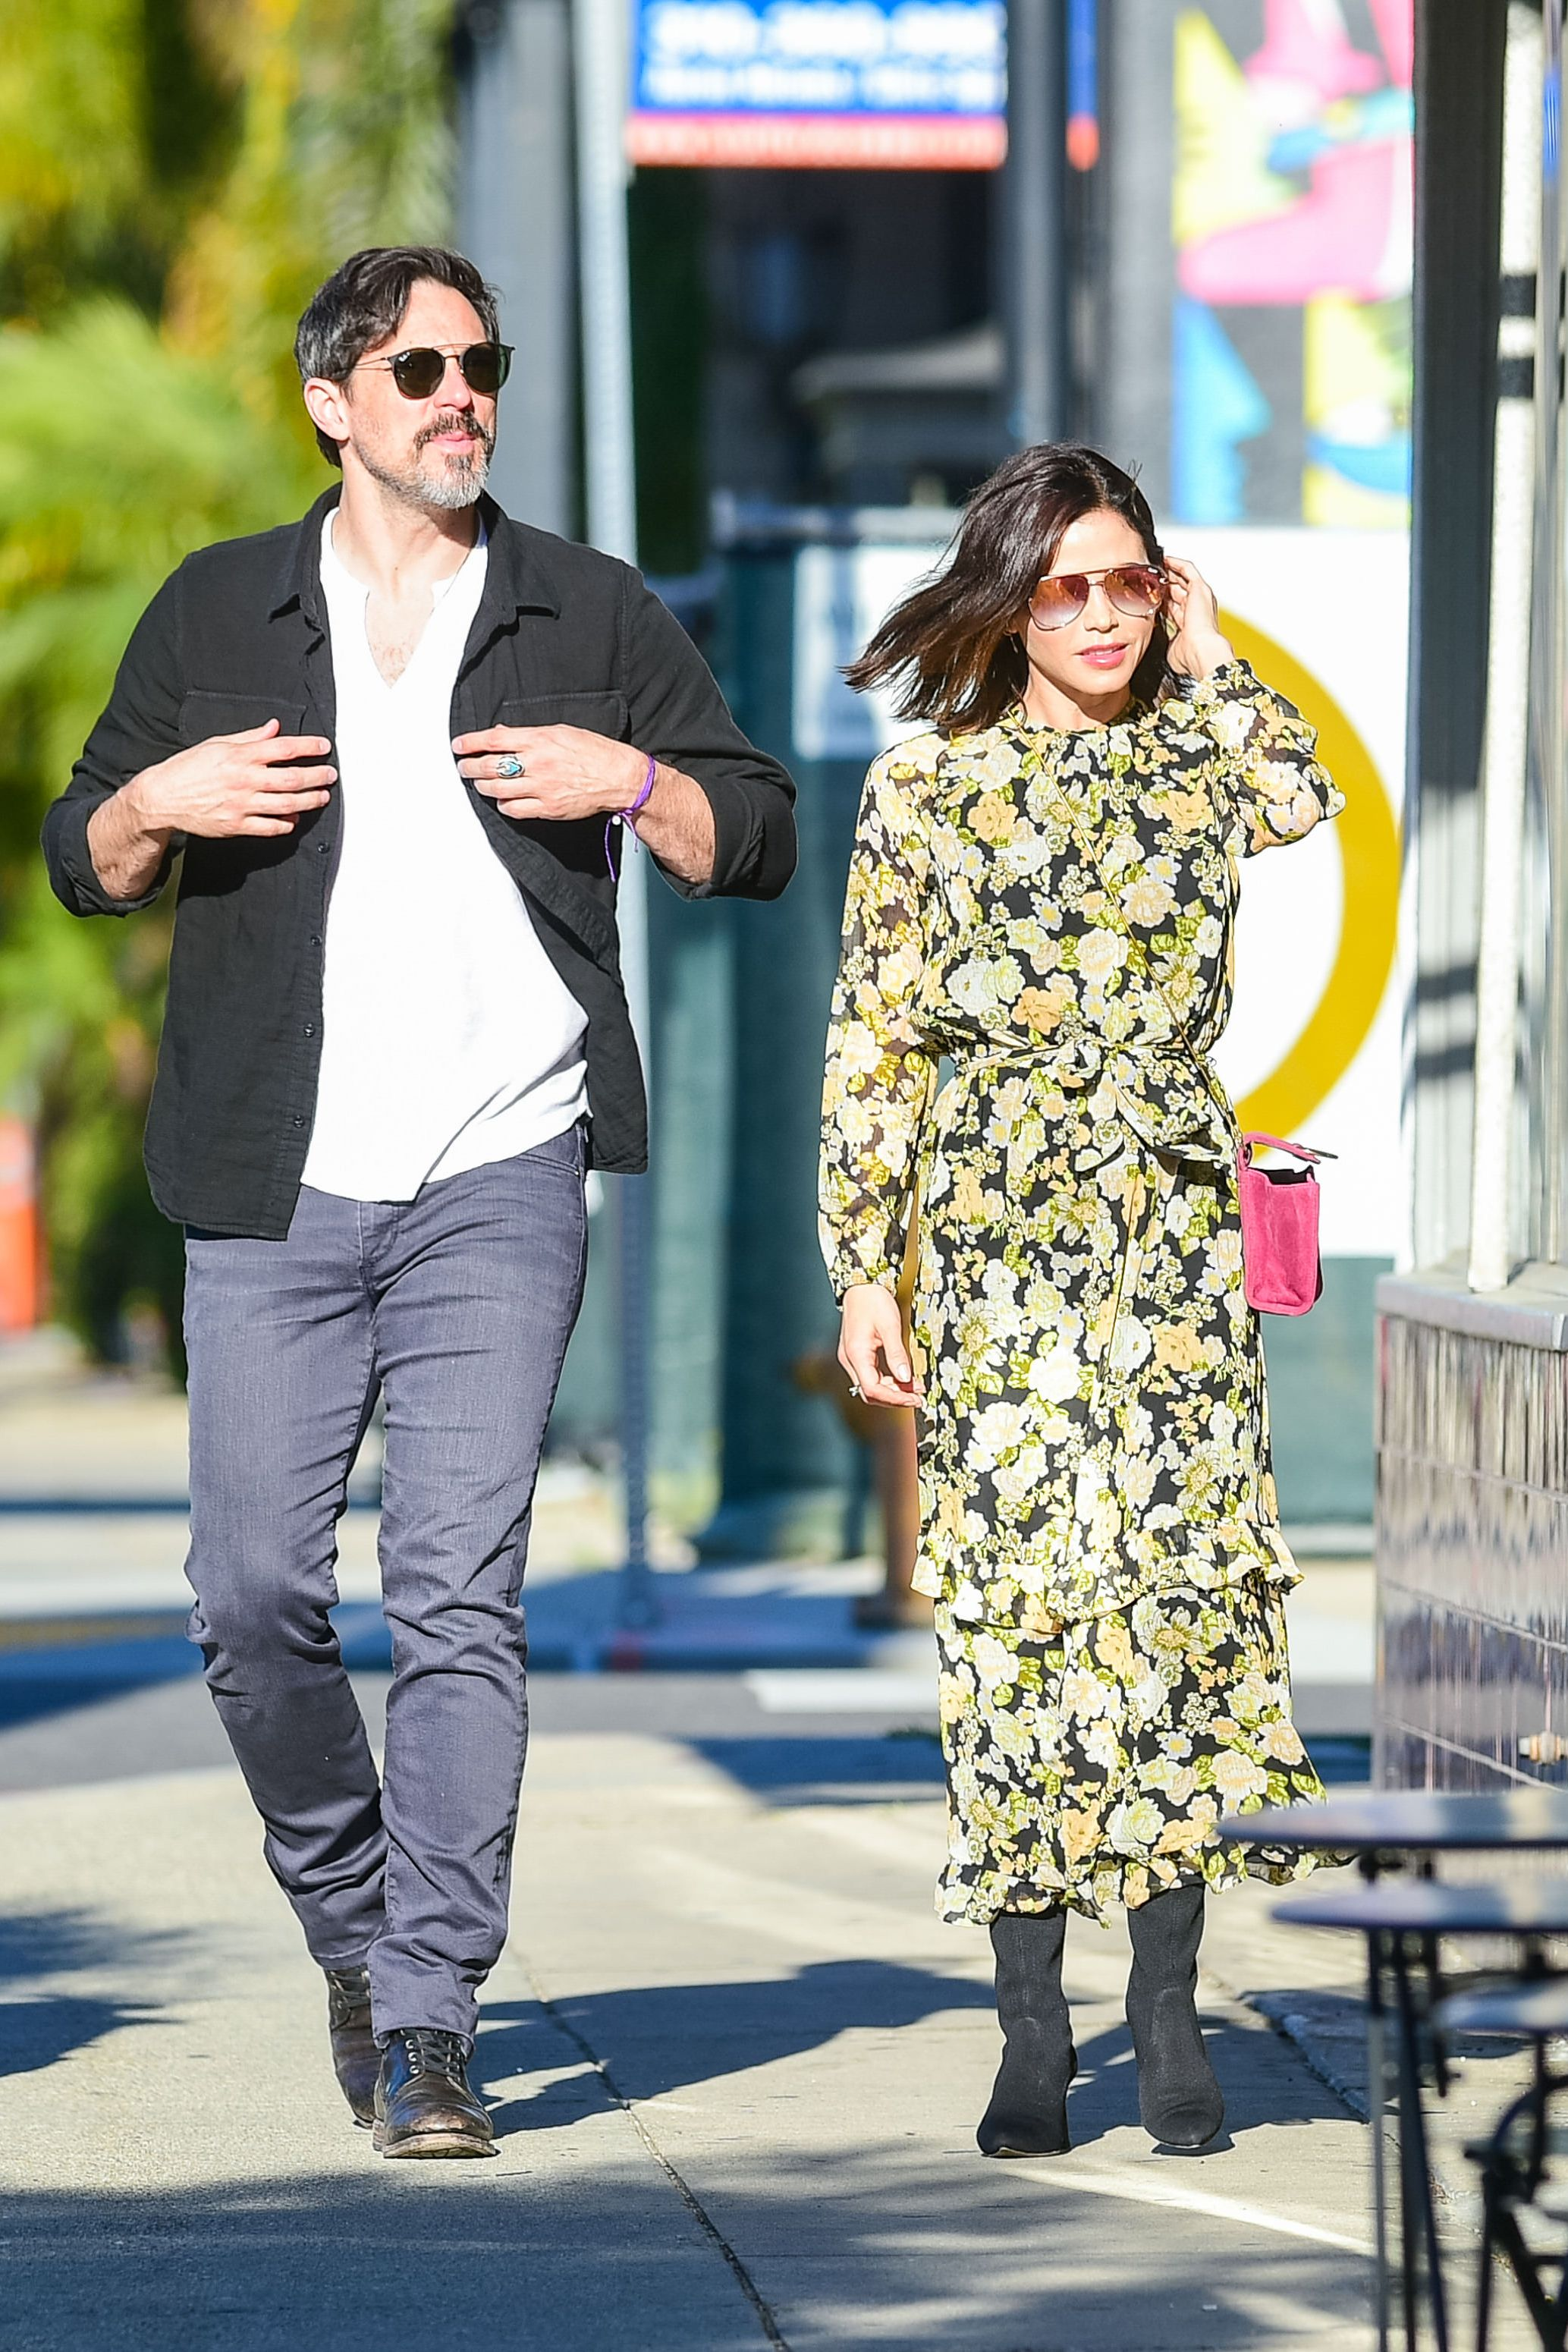 Jenna Dewan The not-too-hot, not-too-cold weather in May means you can wear a chiffon floral dress with sleeves and not succumb to a heat stroke. Instead of your usual sandals, swap for a pair of transitional ankle booties.